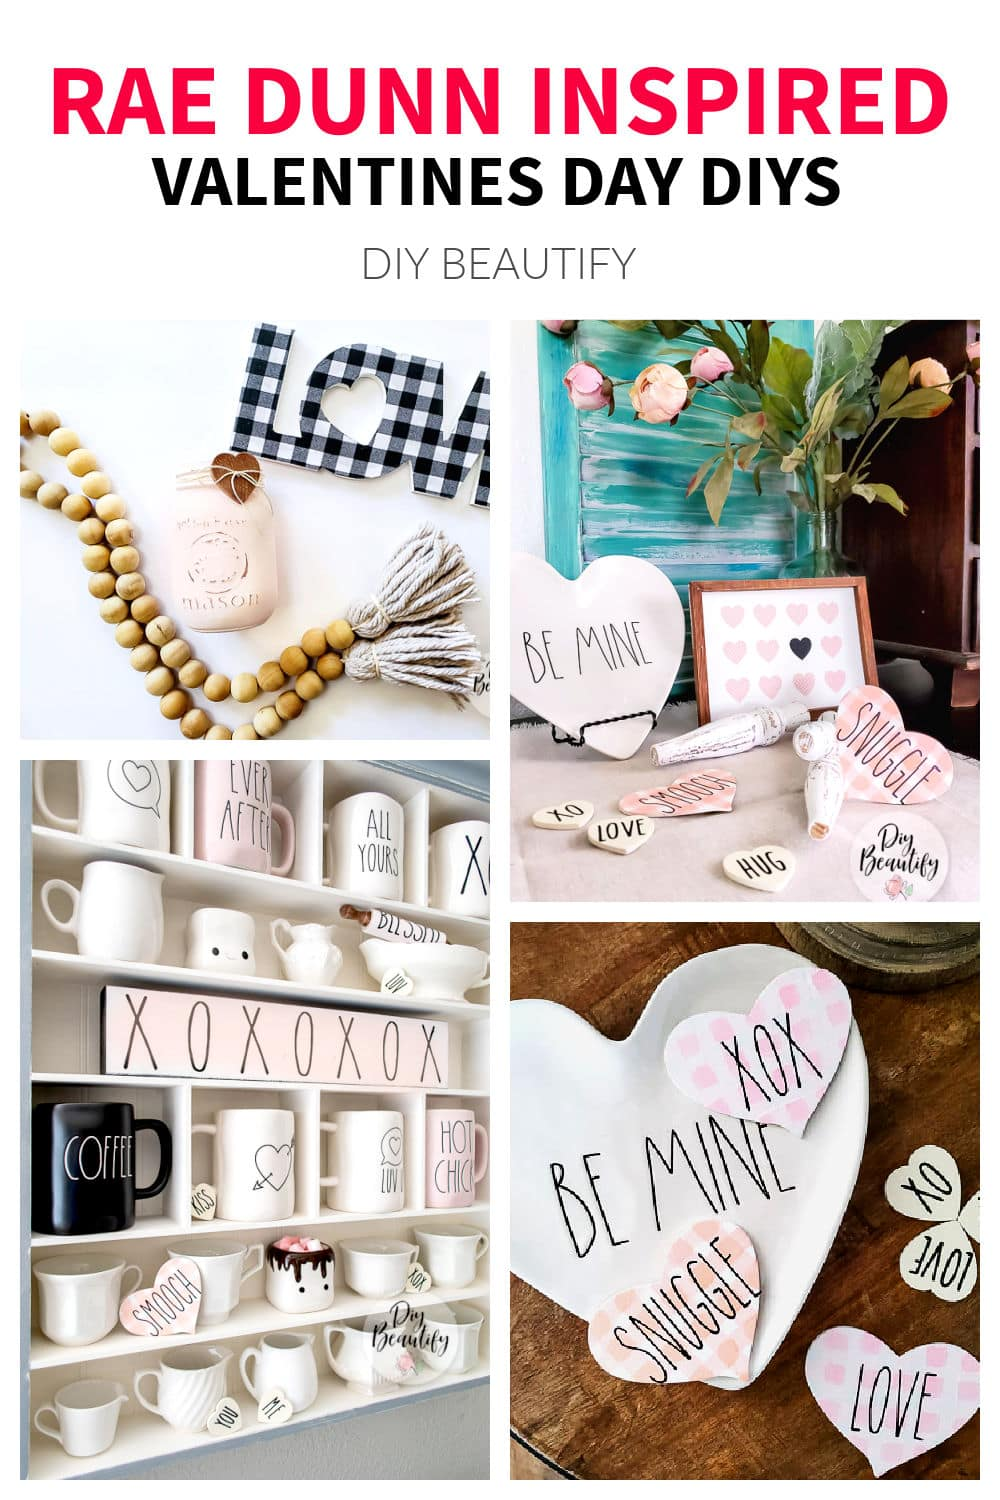 Rae Dunn inspired Valentines Day DIY projects